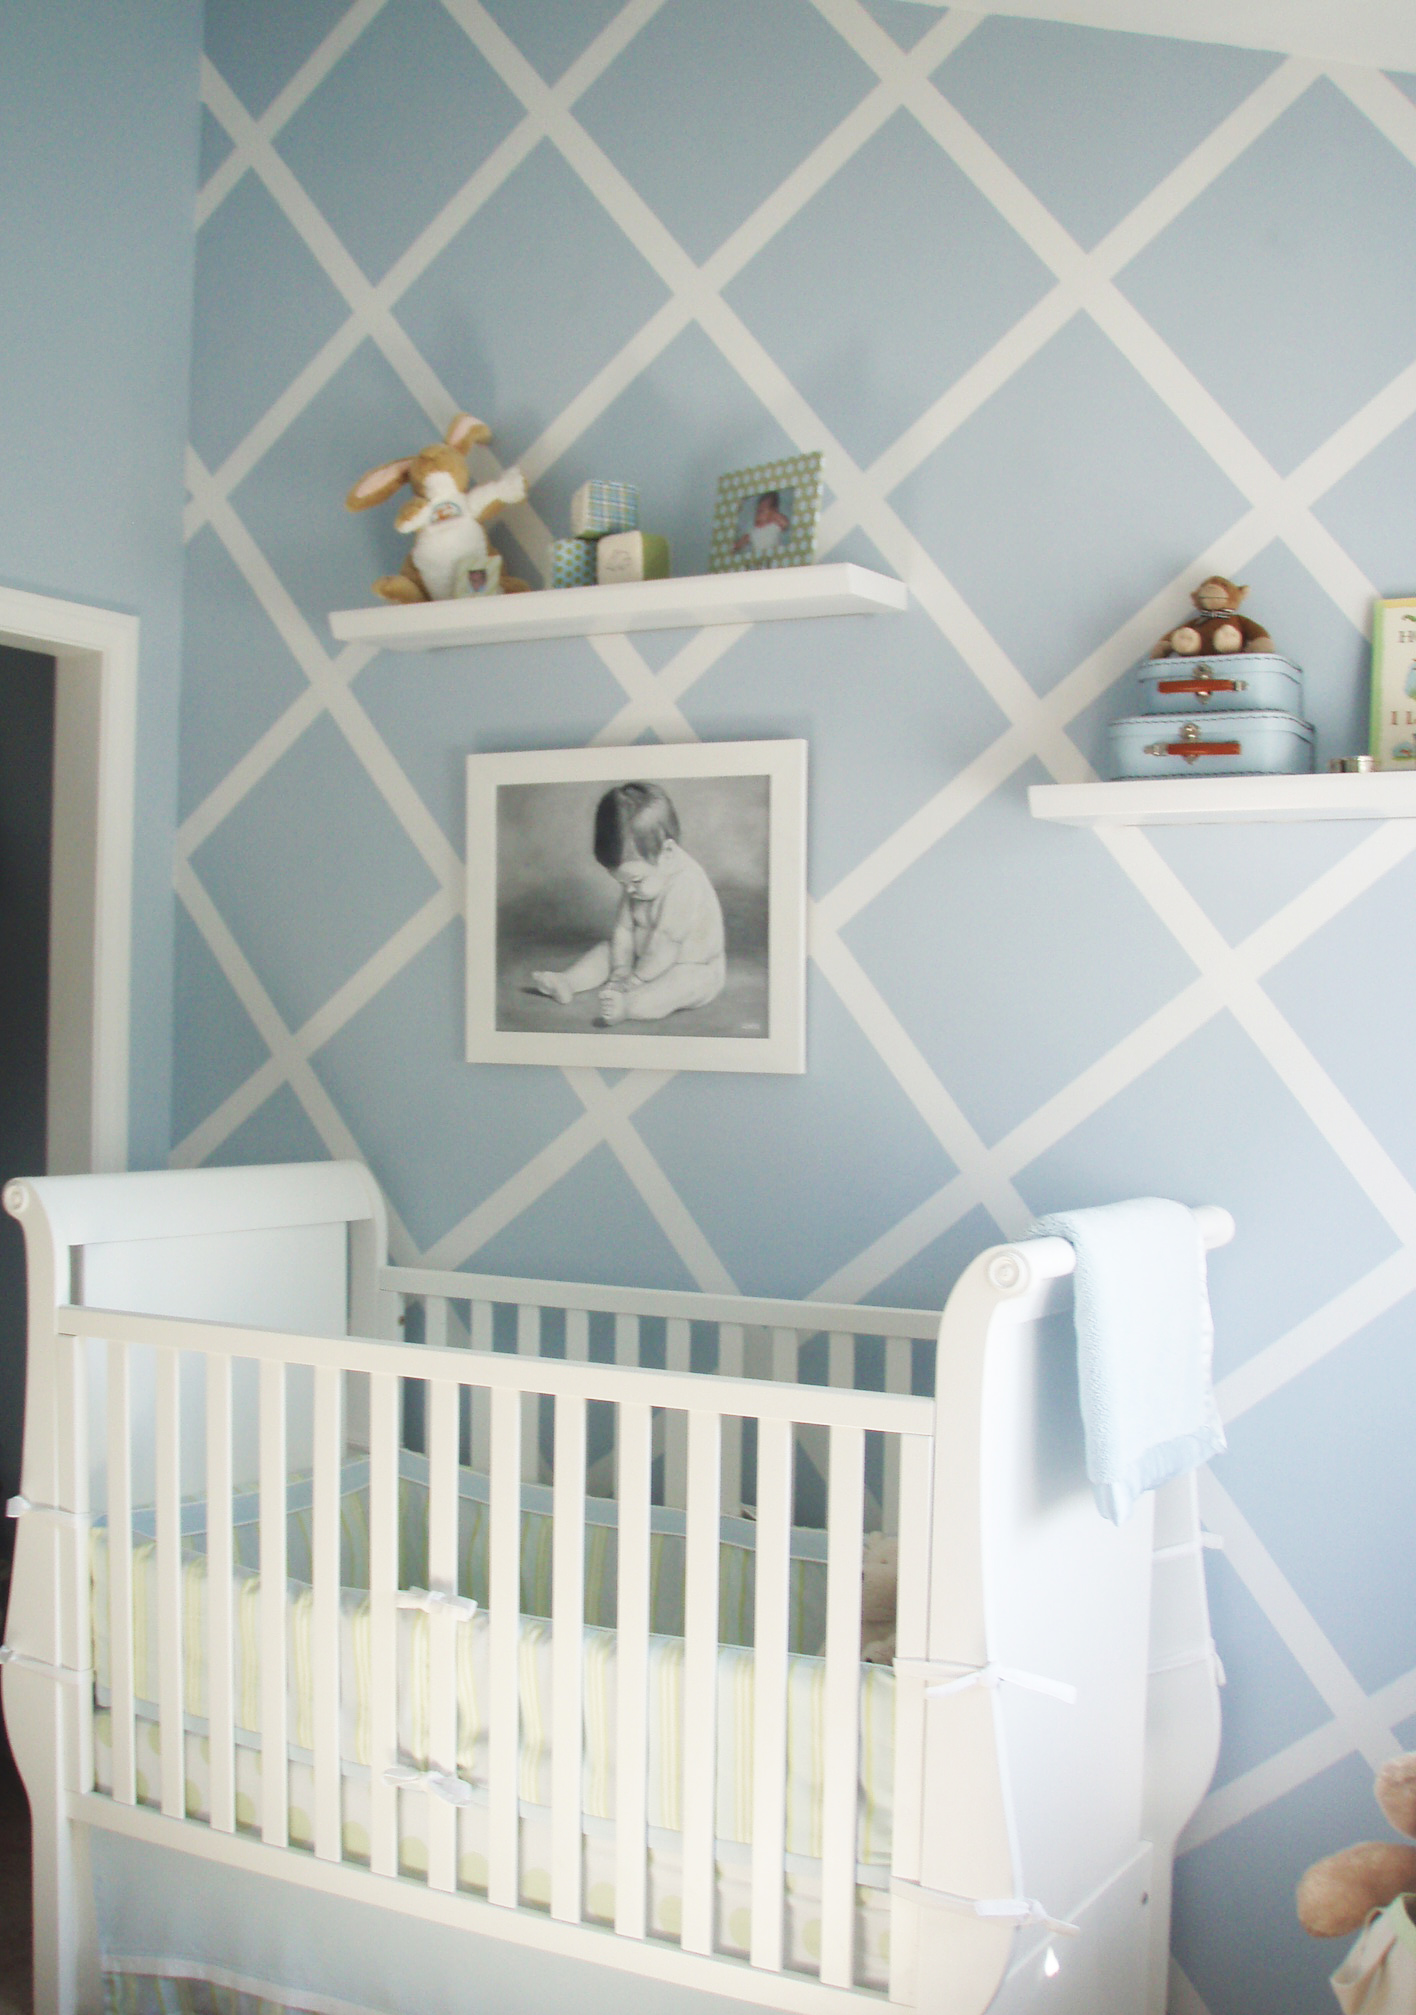 Baby Boy Room Mural Ideas: Babaganoush